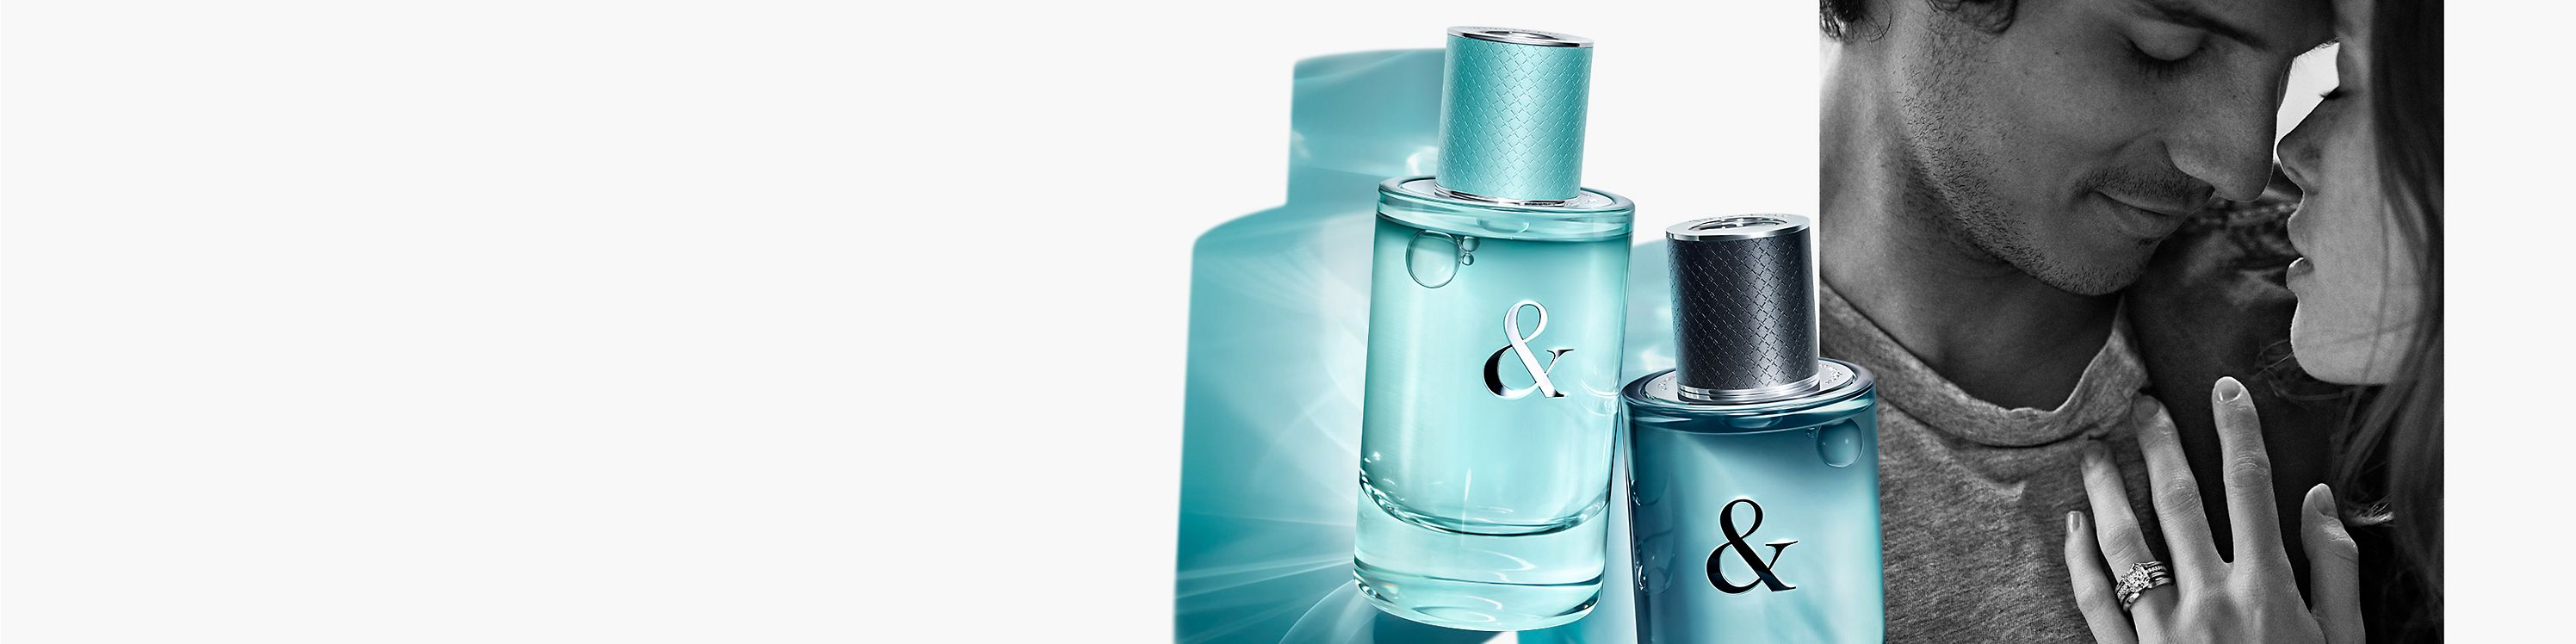 Shop Tiffany & Co. Fragrance